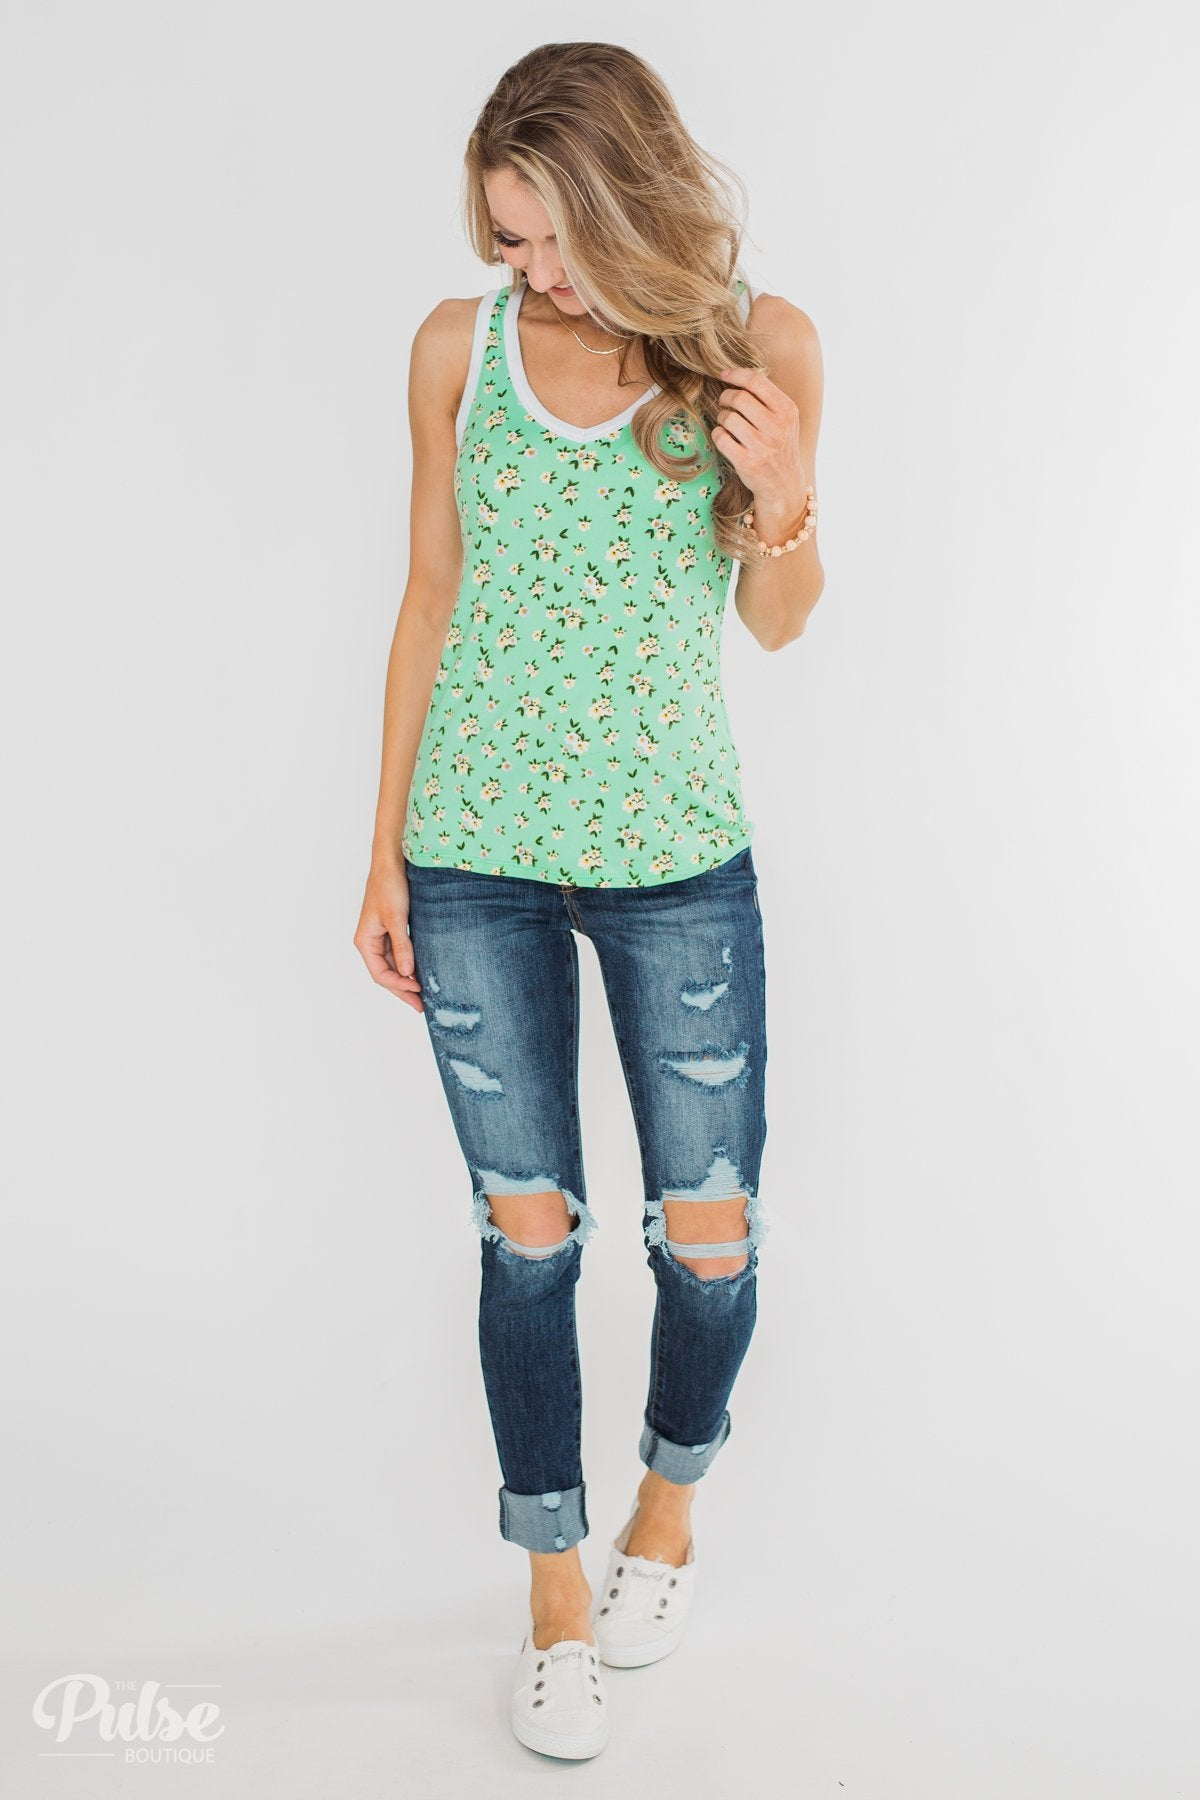 Walk Through The Wildflowers V-Neck Tank Top- Mint Blue